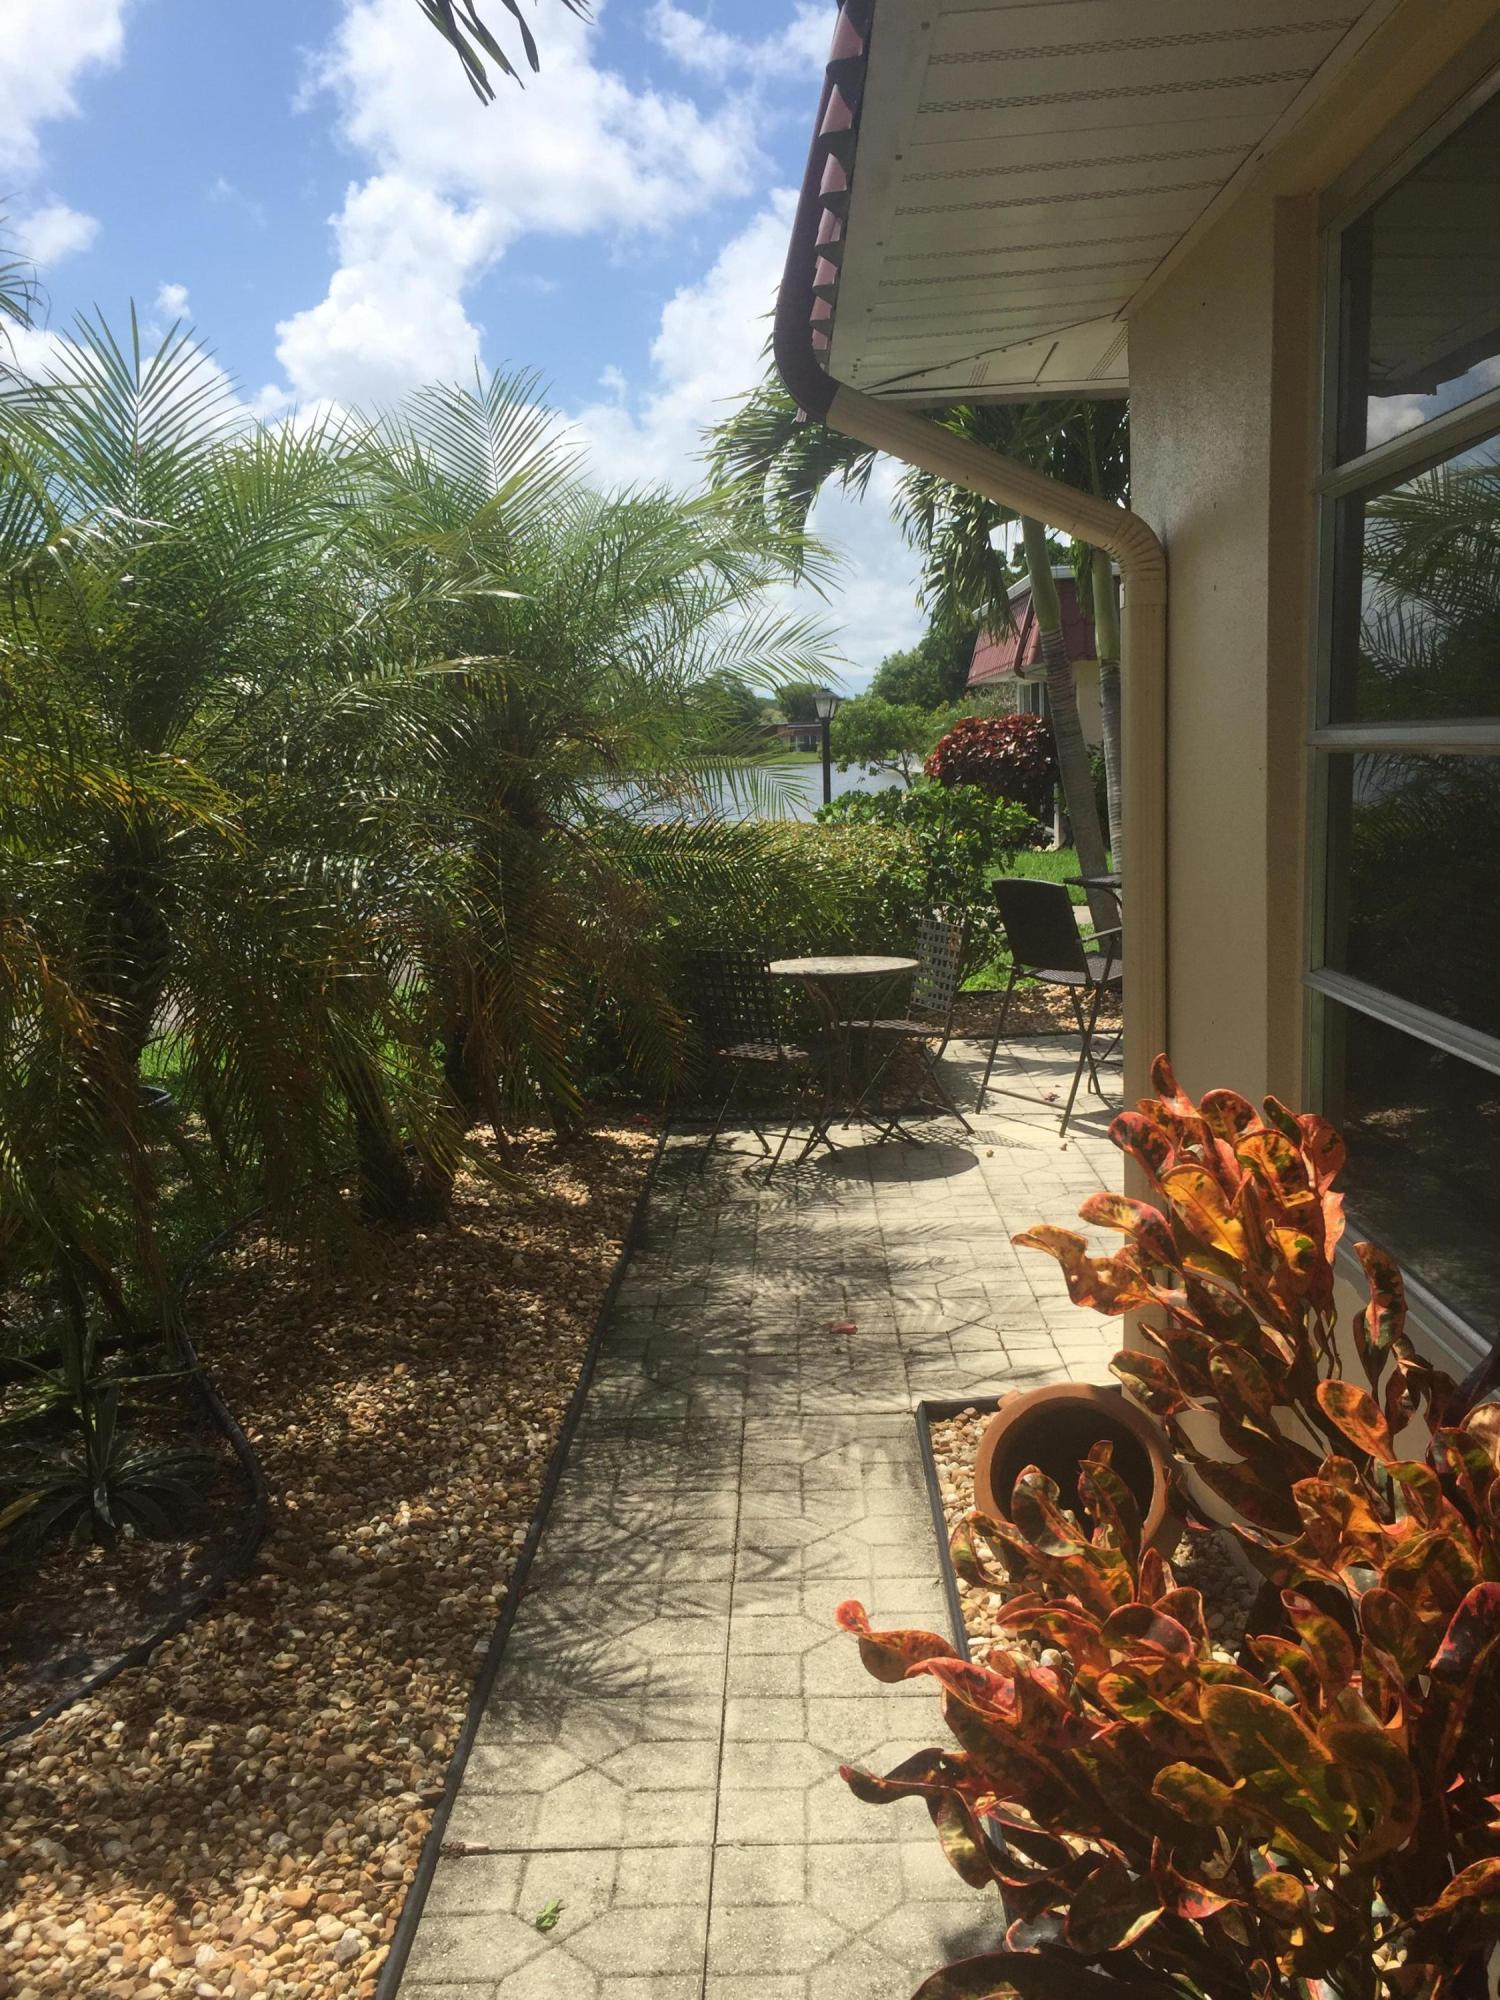 567 Covered Bridge Boulevard 567 Lake Worth, FL 33467 photo 4